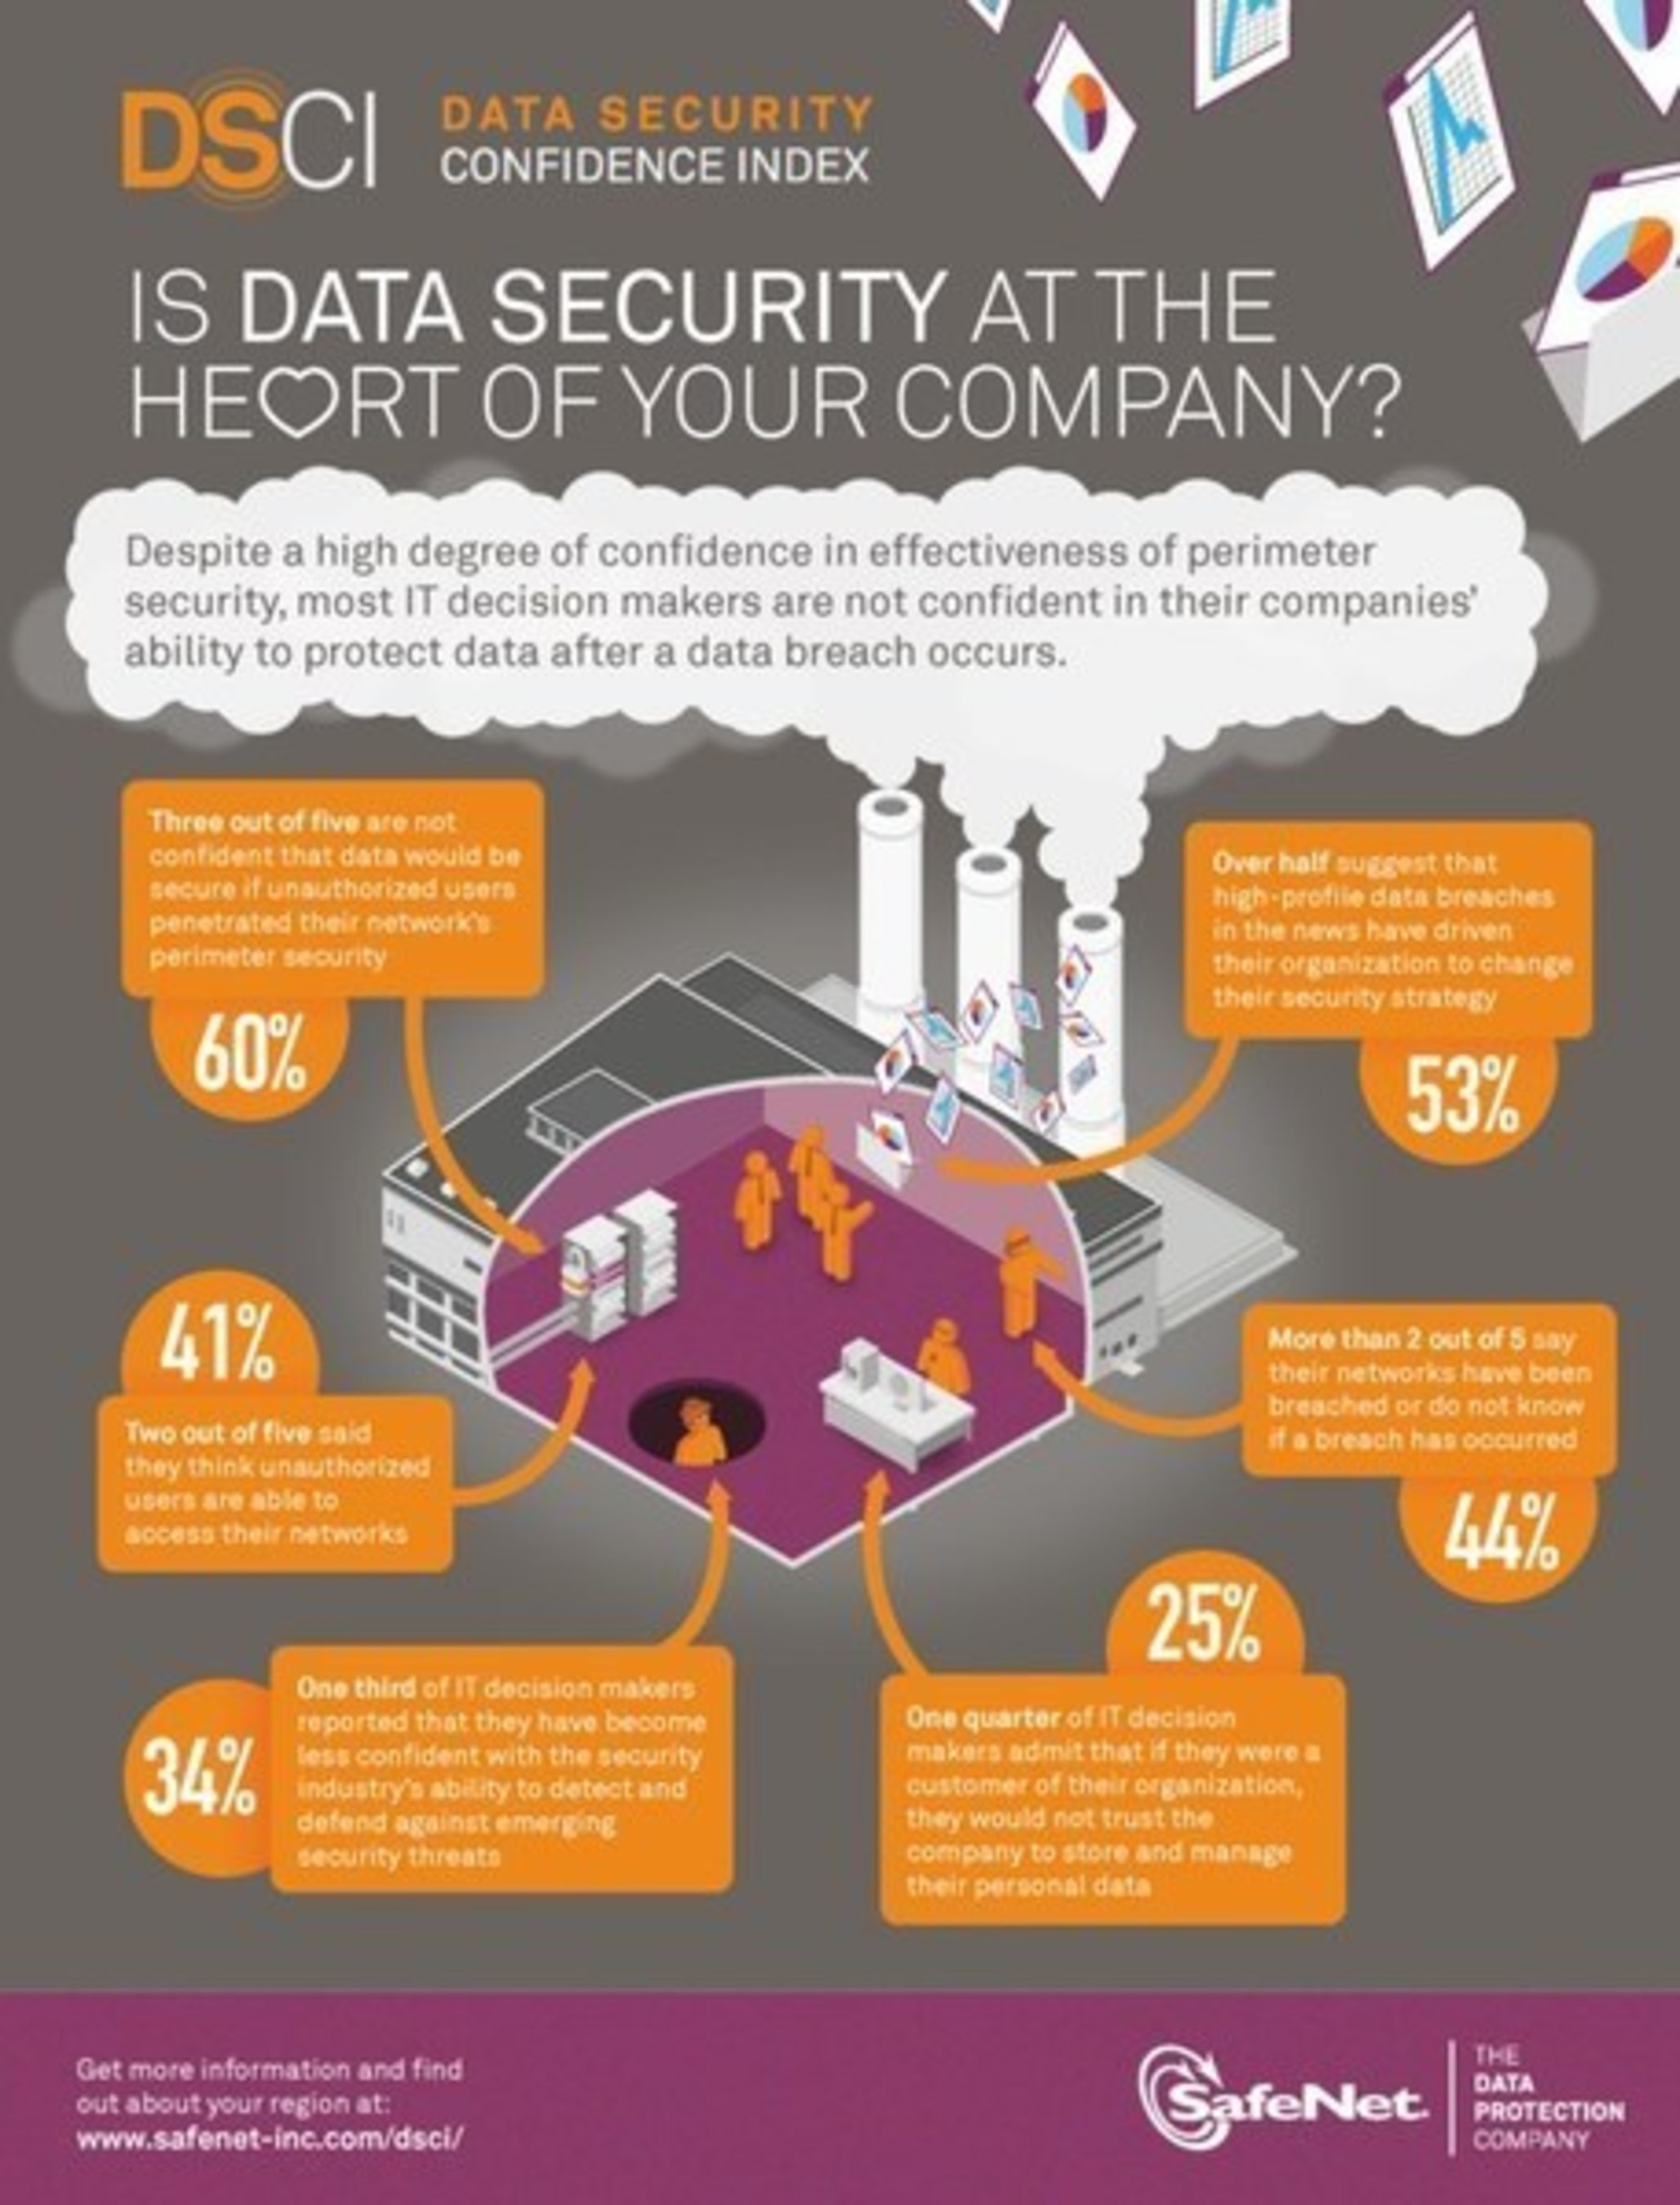 Global Survey Reveals Majority of Organizations Not Confident In Ability to Protect Data after a